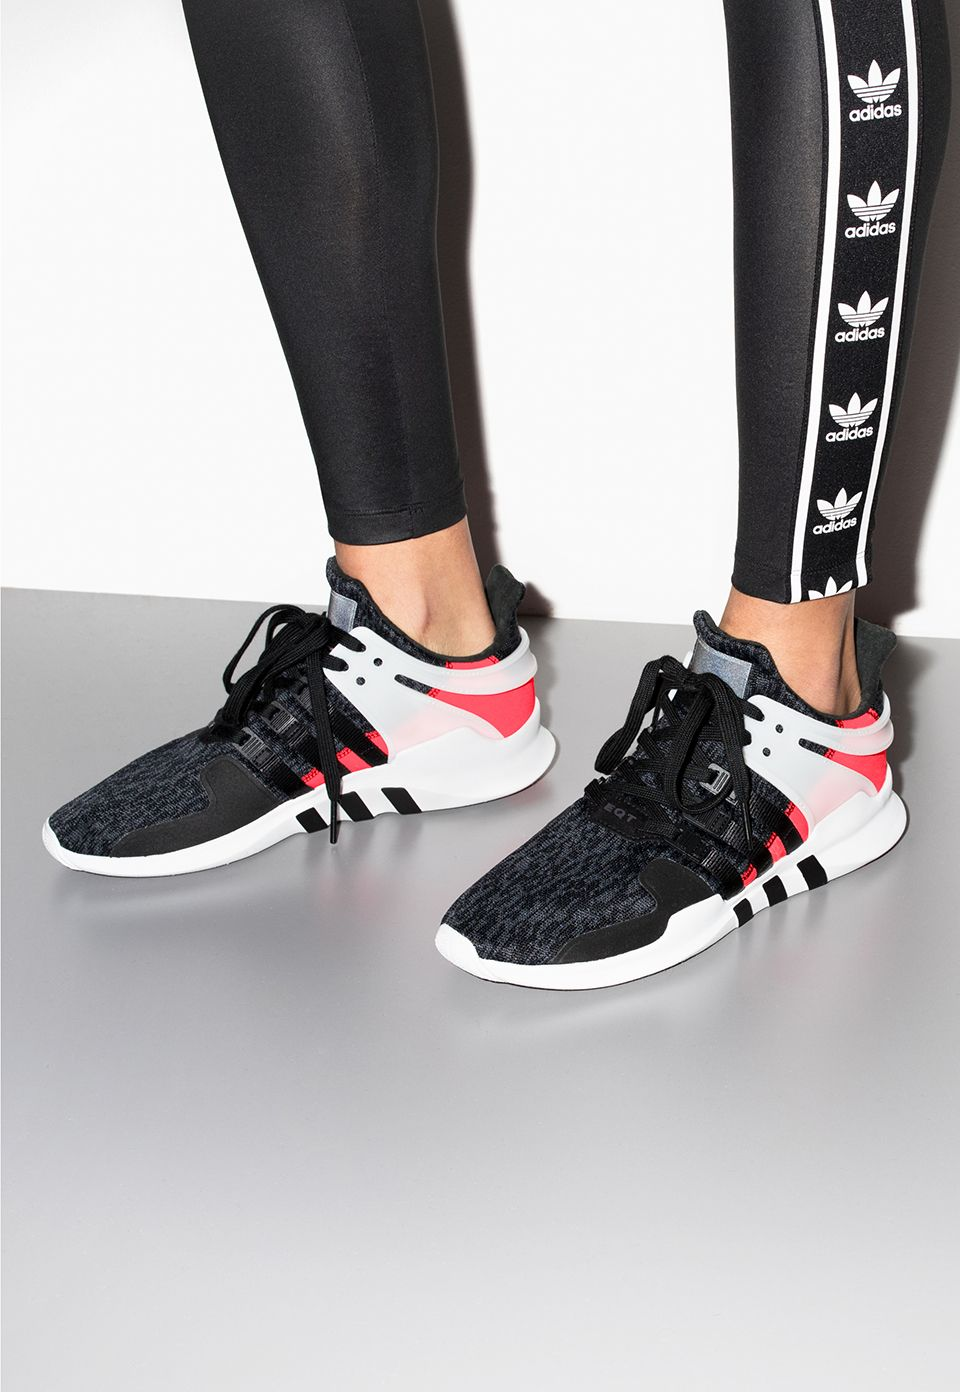 adidas EQT dames | Adidas outfit women, Back to school shoes ...